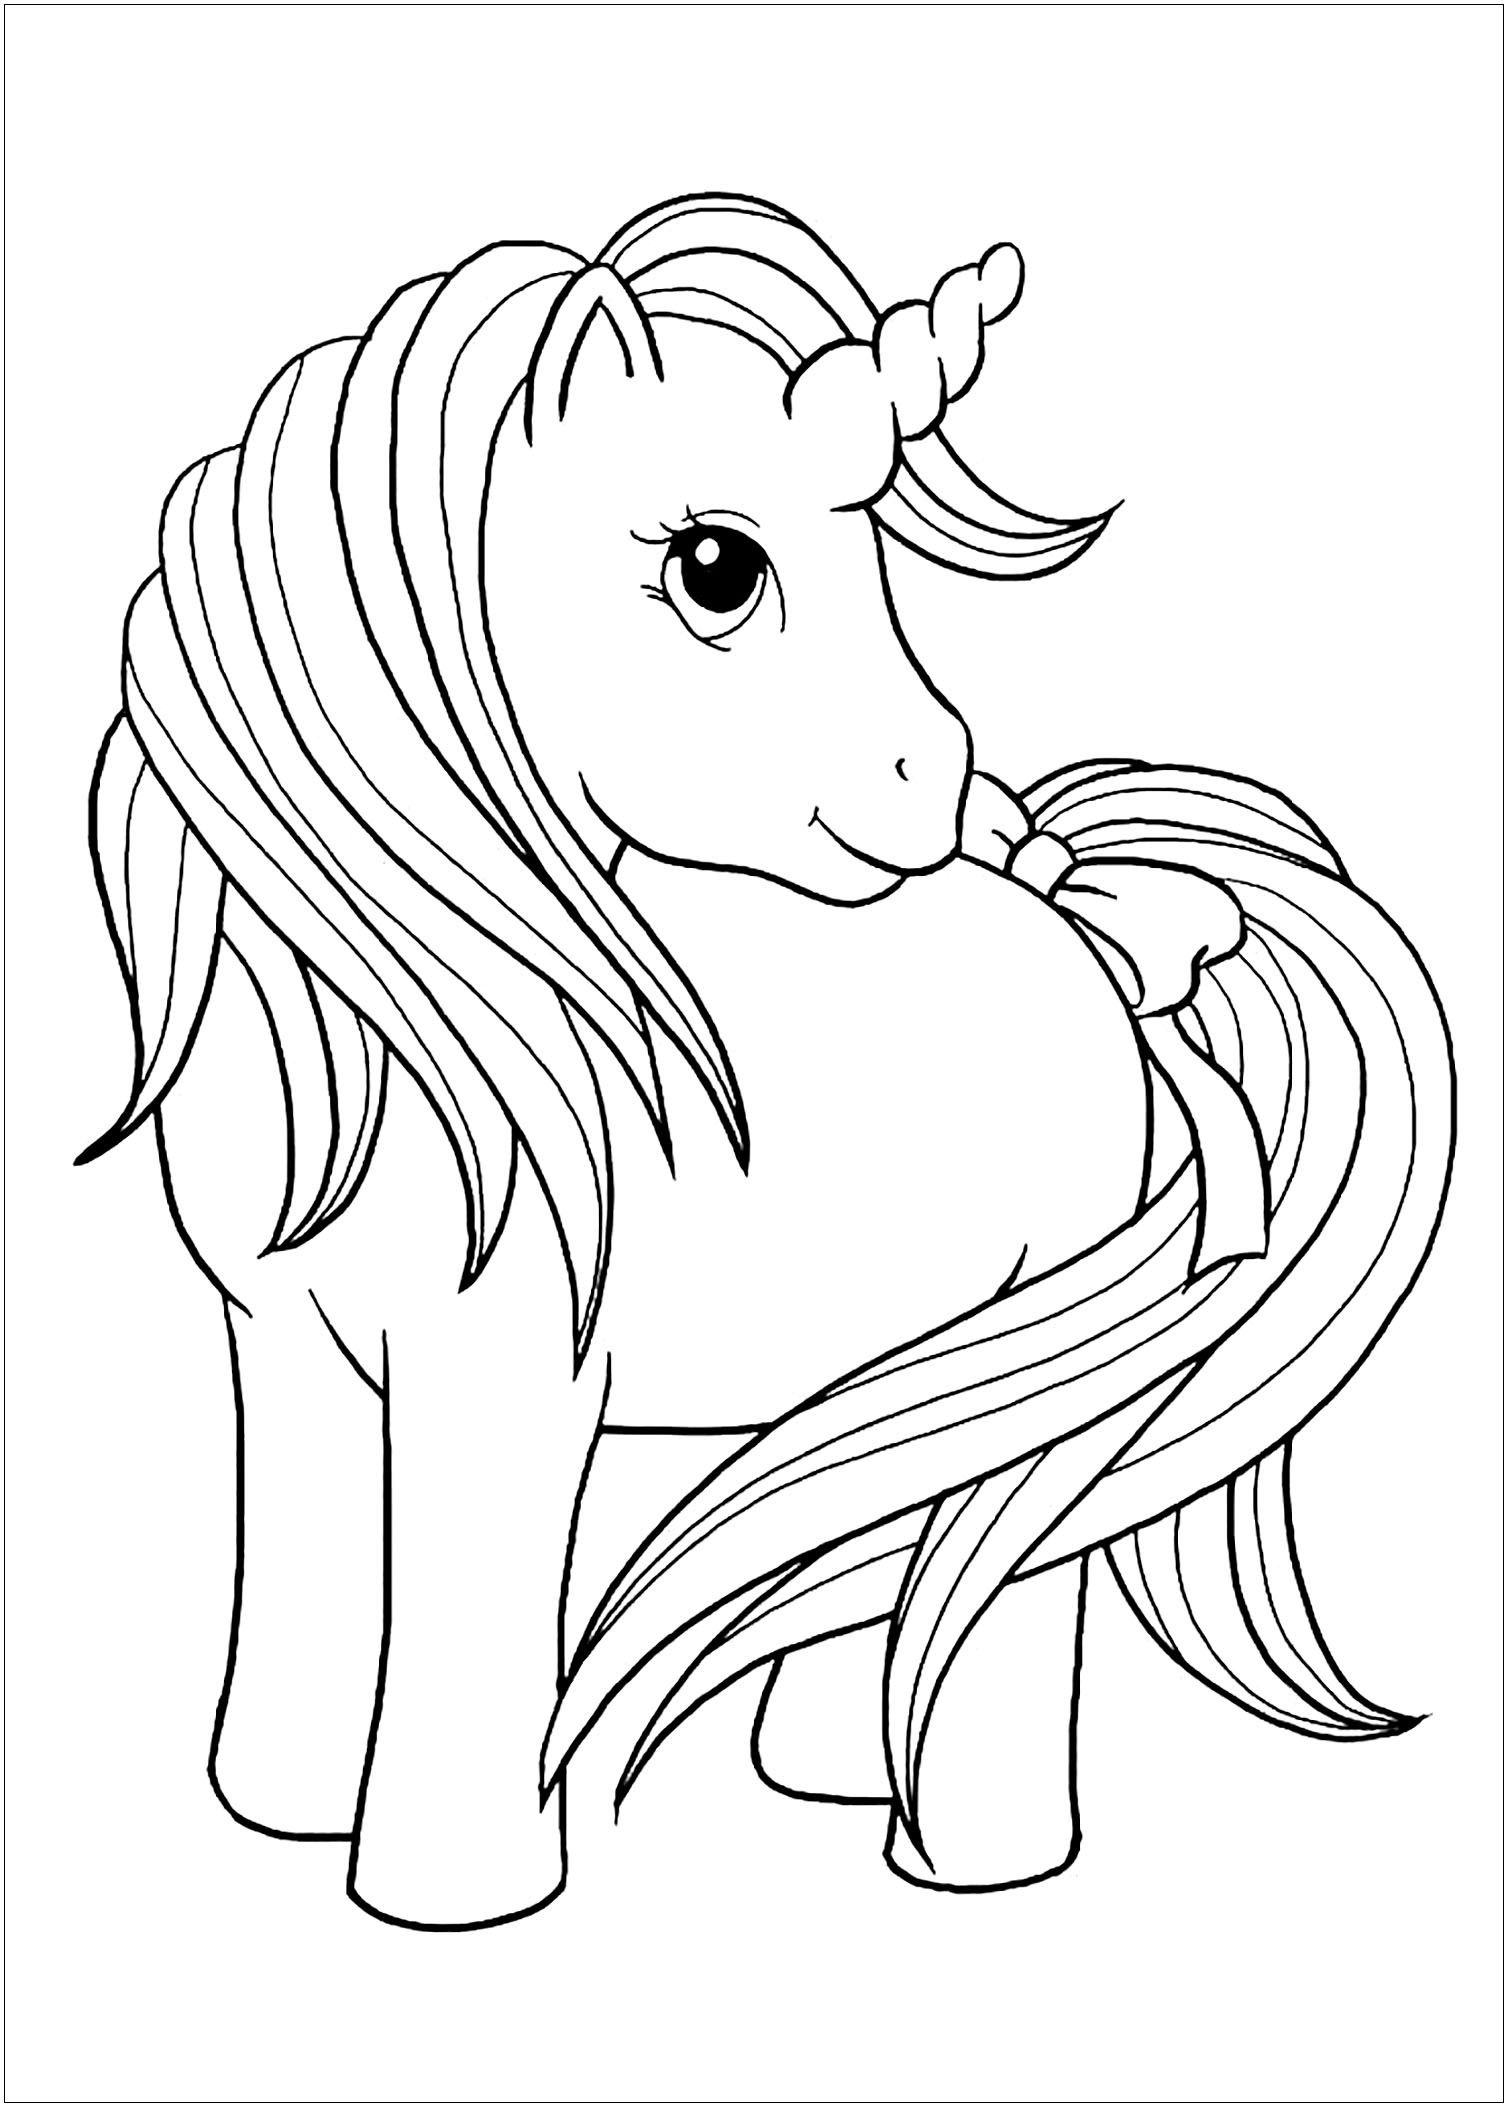 Free Coloring Page Unicorn Youngandtae Com In 2020 Cute Coloring Pages Horse Coloring Pages Animal Coloring Pages